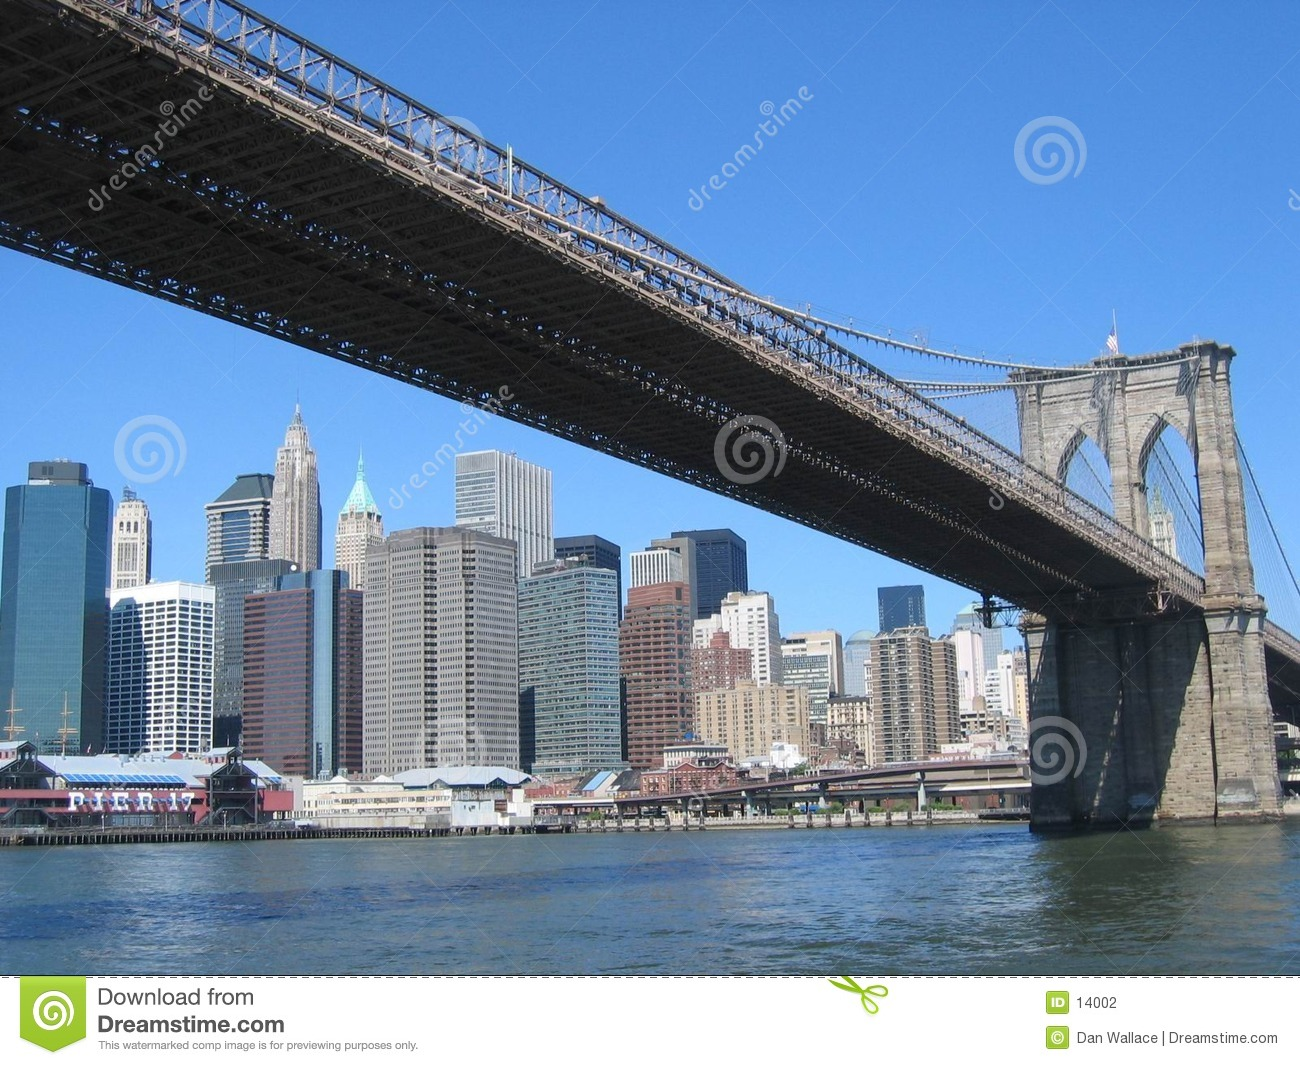 BrooklynBridge, New York